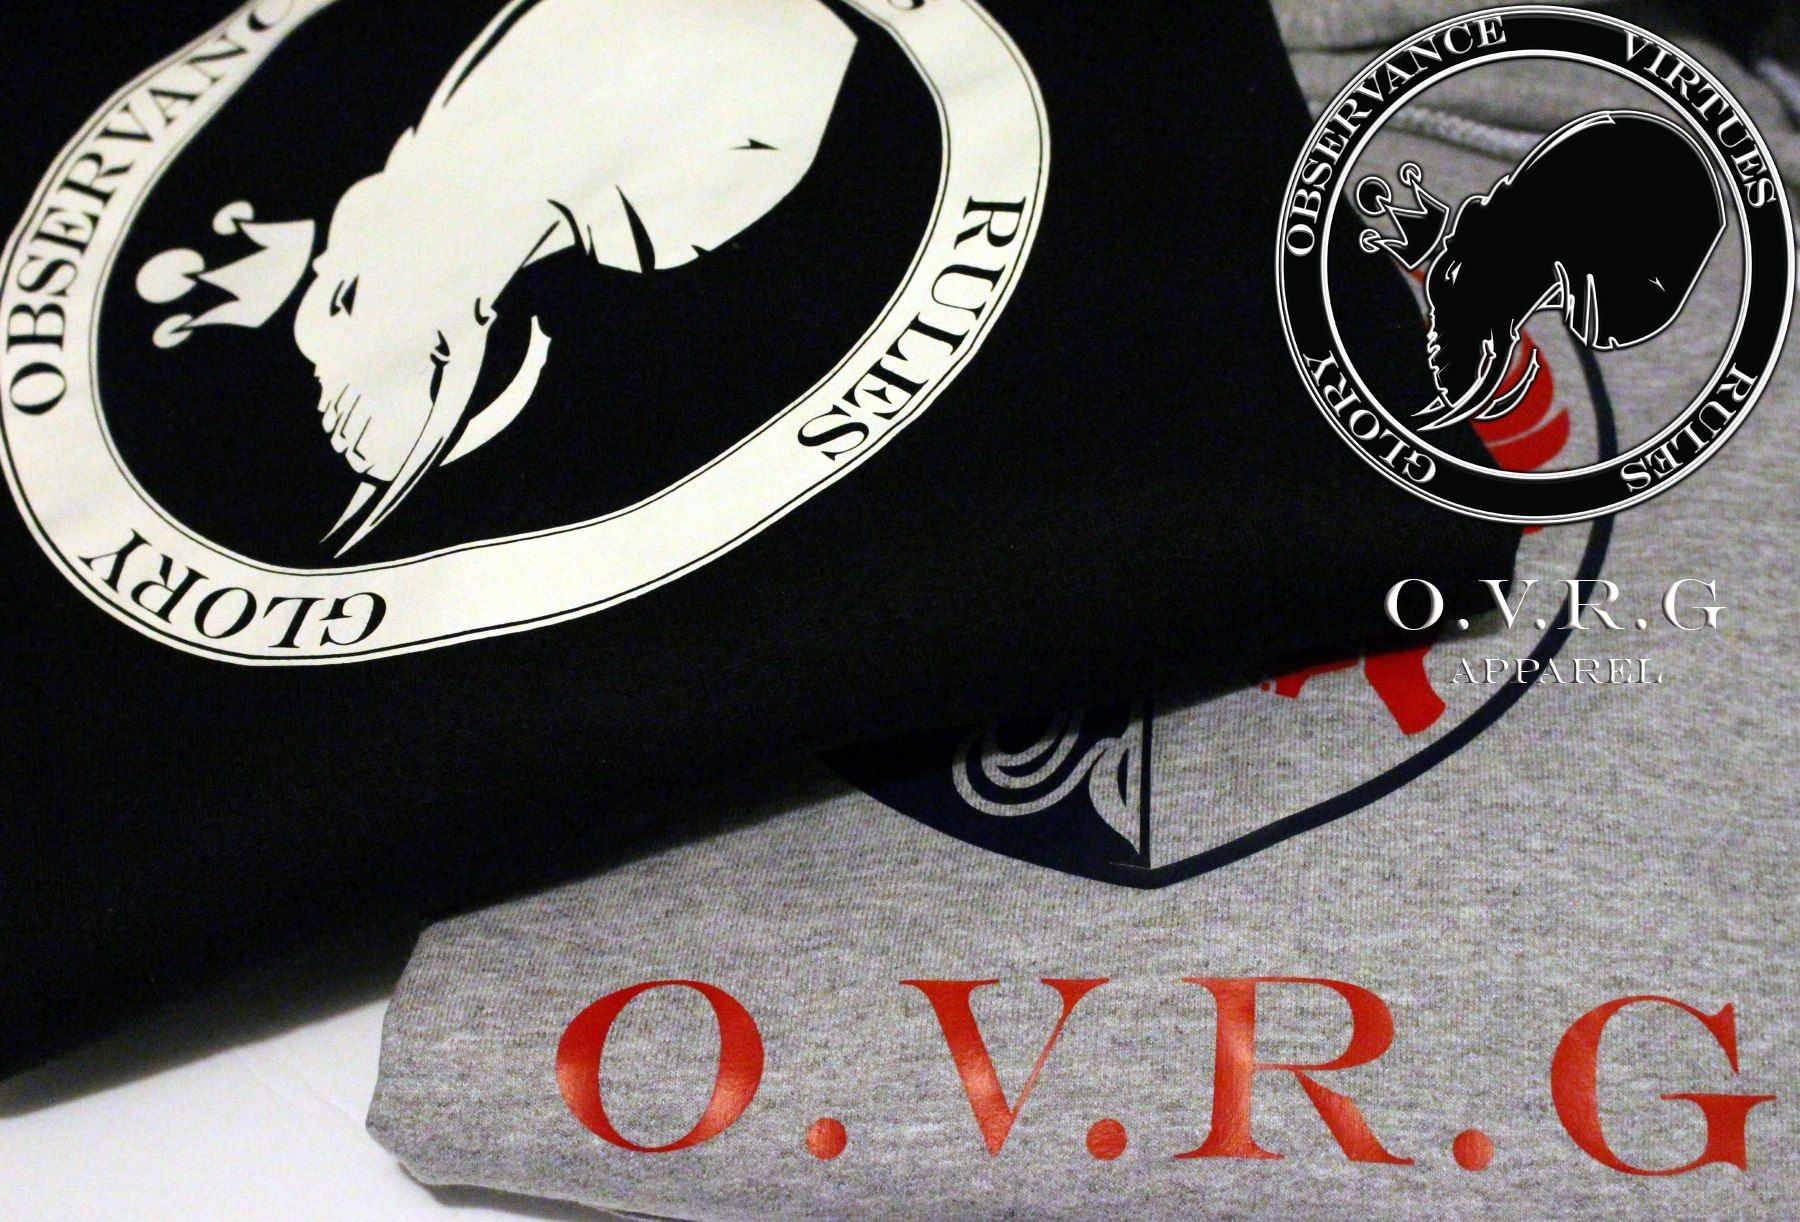 A pure idea, being groomed to perfection for the few and the proud. Like our page https://www.facebook.com/OVRG.Apparel and contact us for yours. Come visit us too at : http://www.ovrgapparel.com/  Une idée pure, bien soignée à la perfection pour les élus et les fiers. Aimez notre page https://www.facebook.com/OVRG.Apparel  et contactez nous pour le vôtre. Venez nous visiter aussi sur : http://www.ovrgapparel.com/  ‪#‎MTLNAUS‬